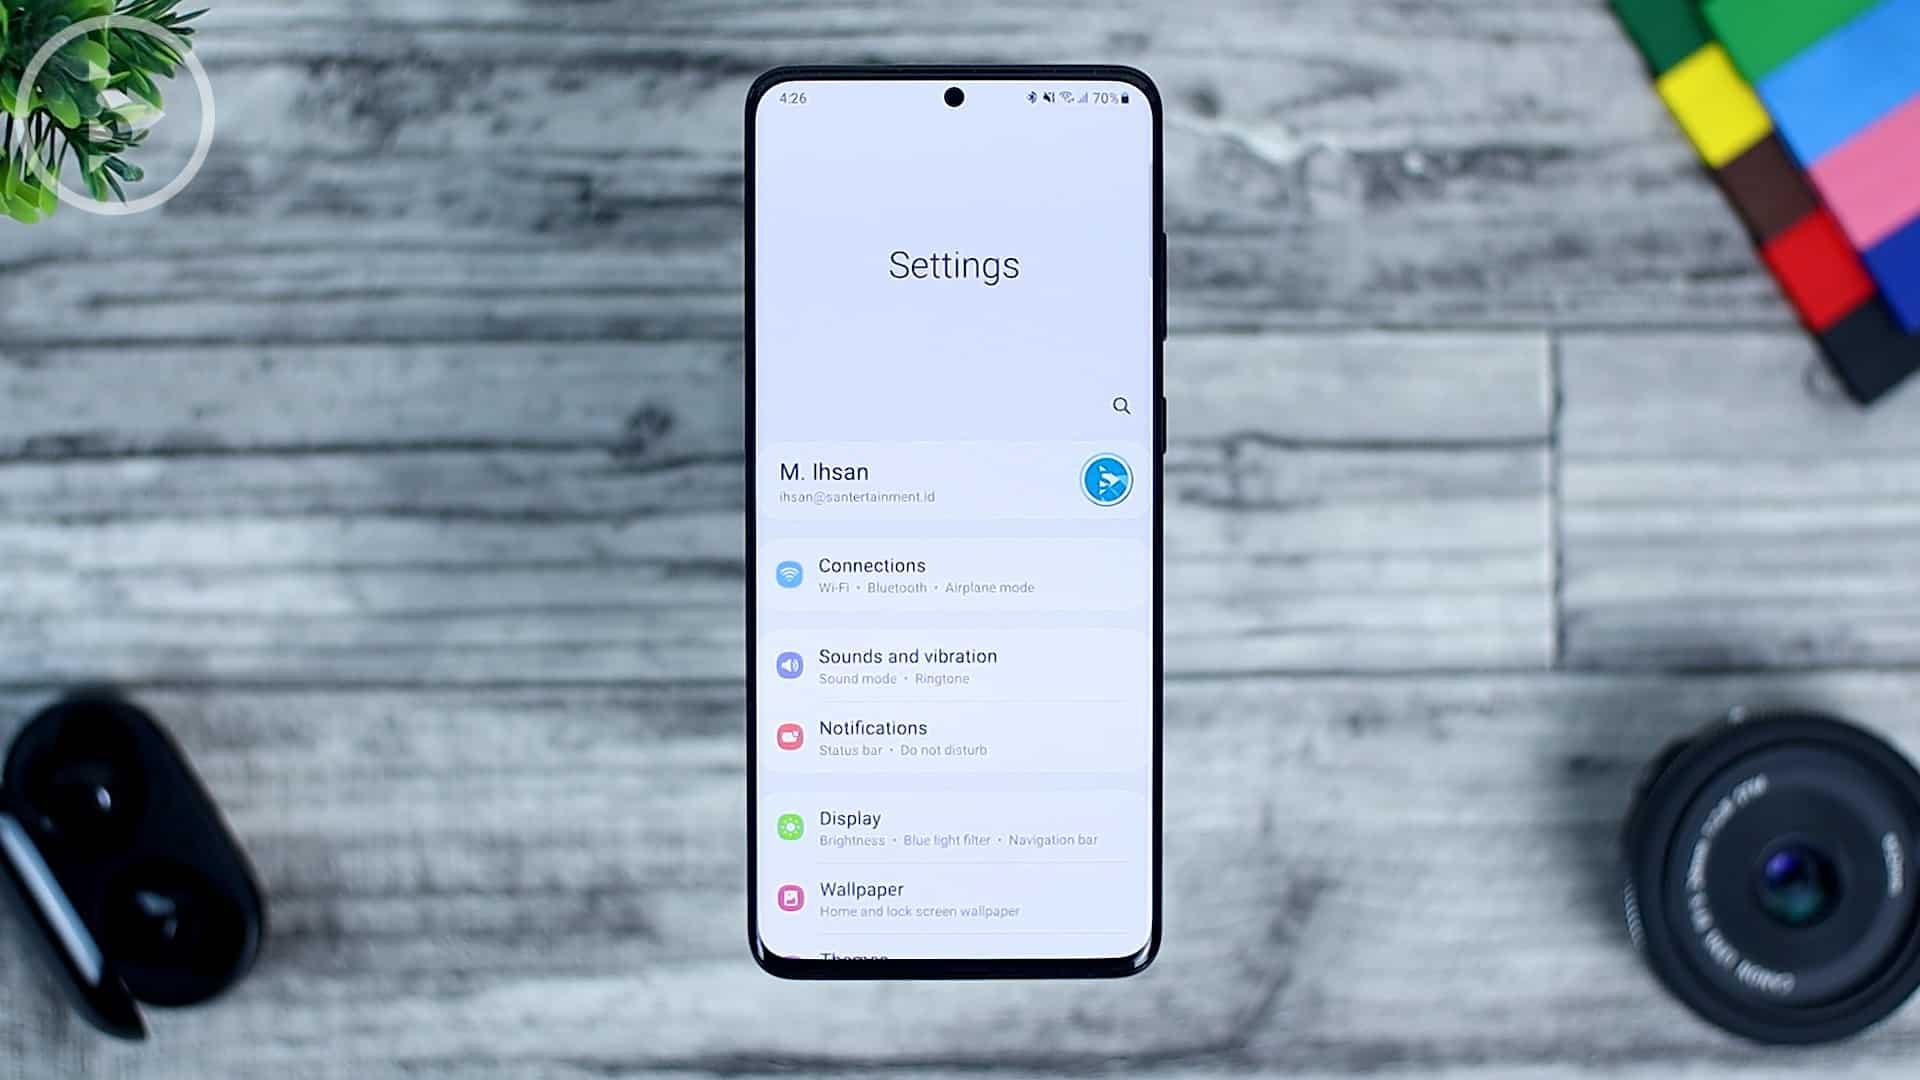 25 Fitur Baru di One UI 3.0 Dengan Android 11 - New Setting Design with Icon and Email